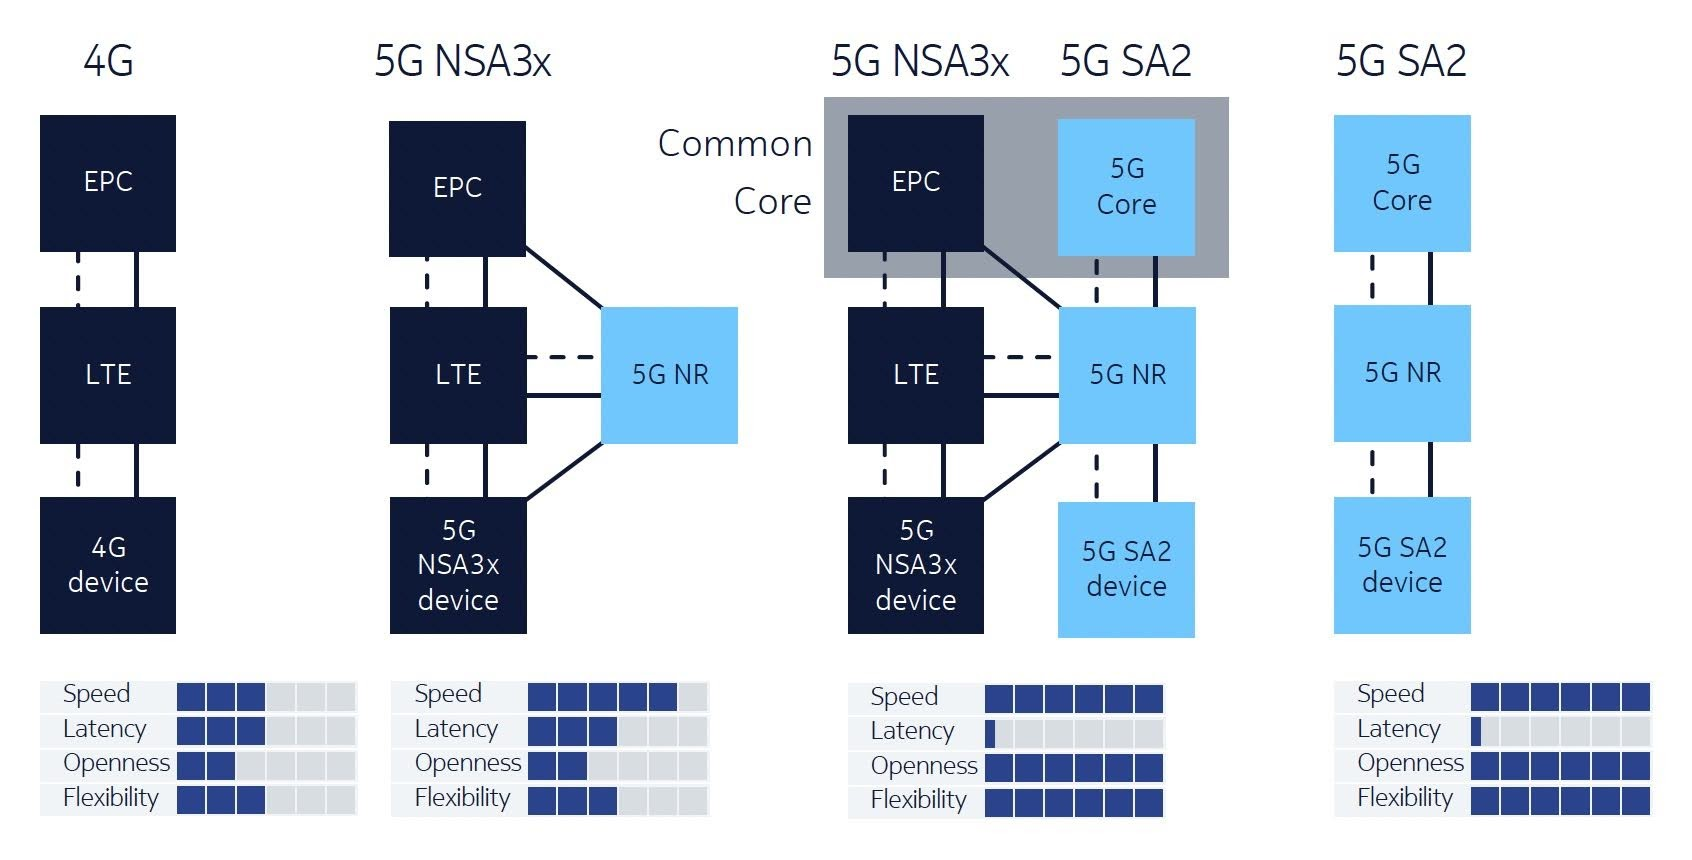 With 4G as their start point, CSPs need a straightforward evolution path to 5G Non-Standalone (5G NSA) and 5G Standalone (5G SA).